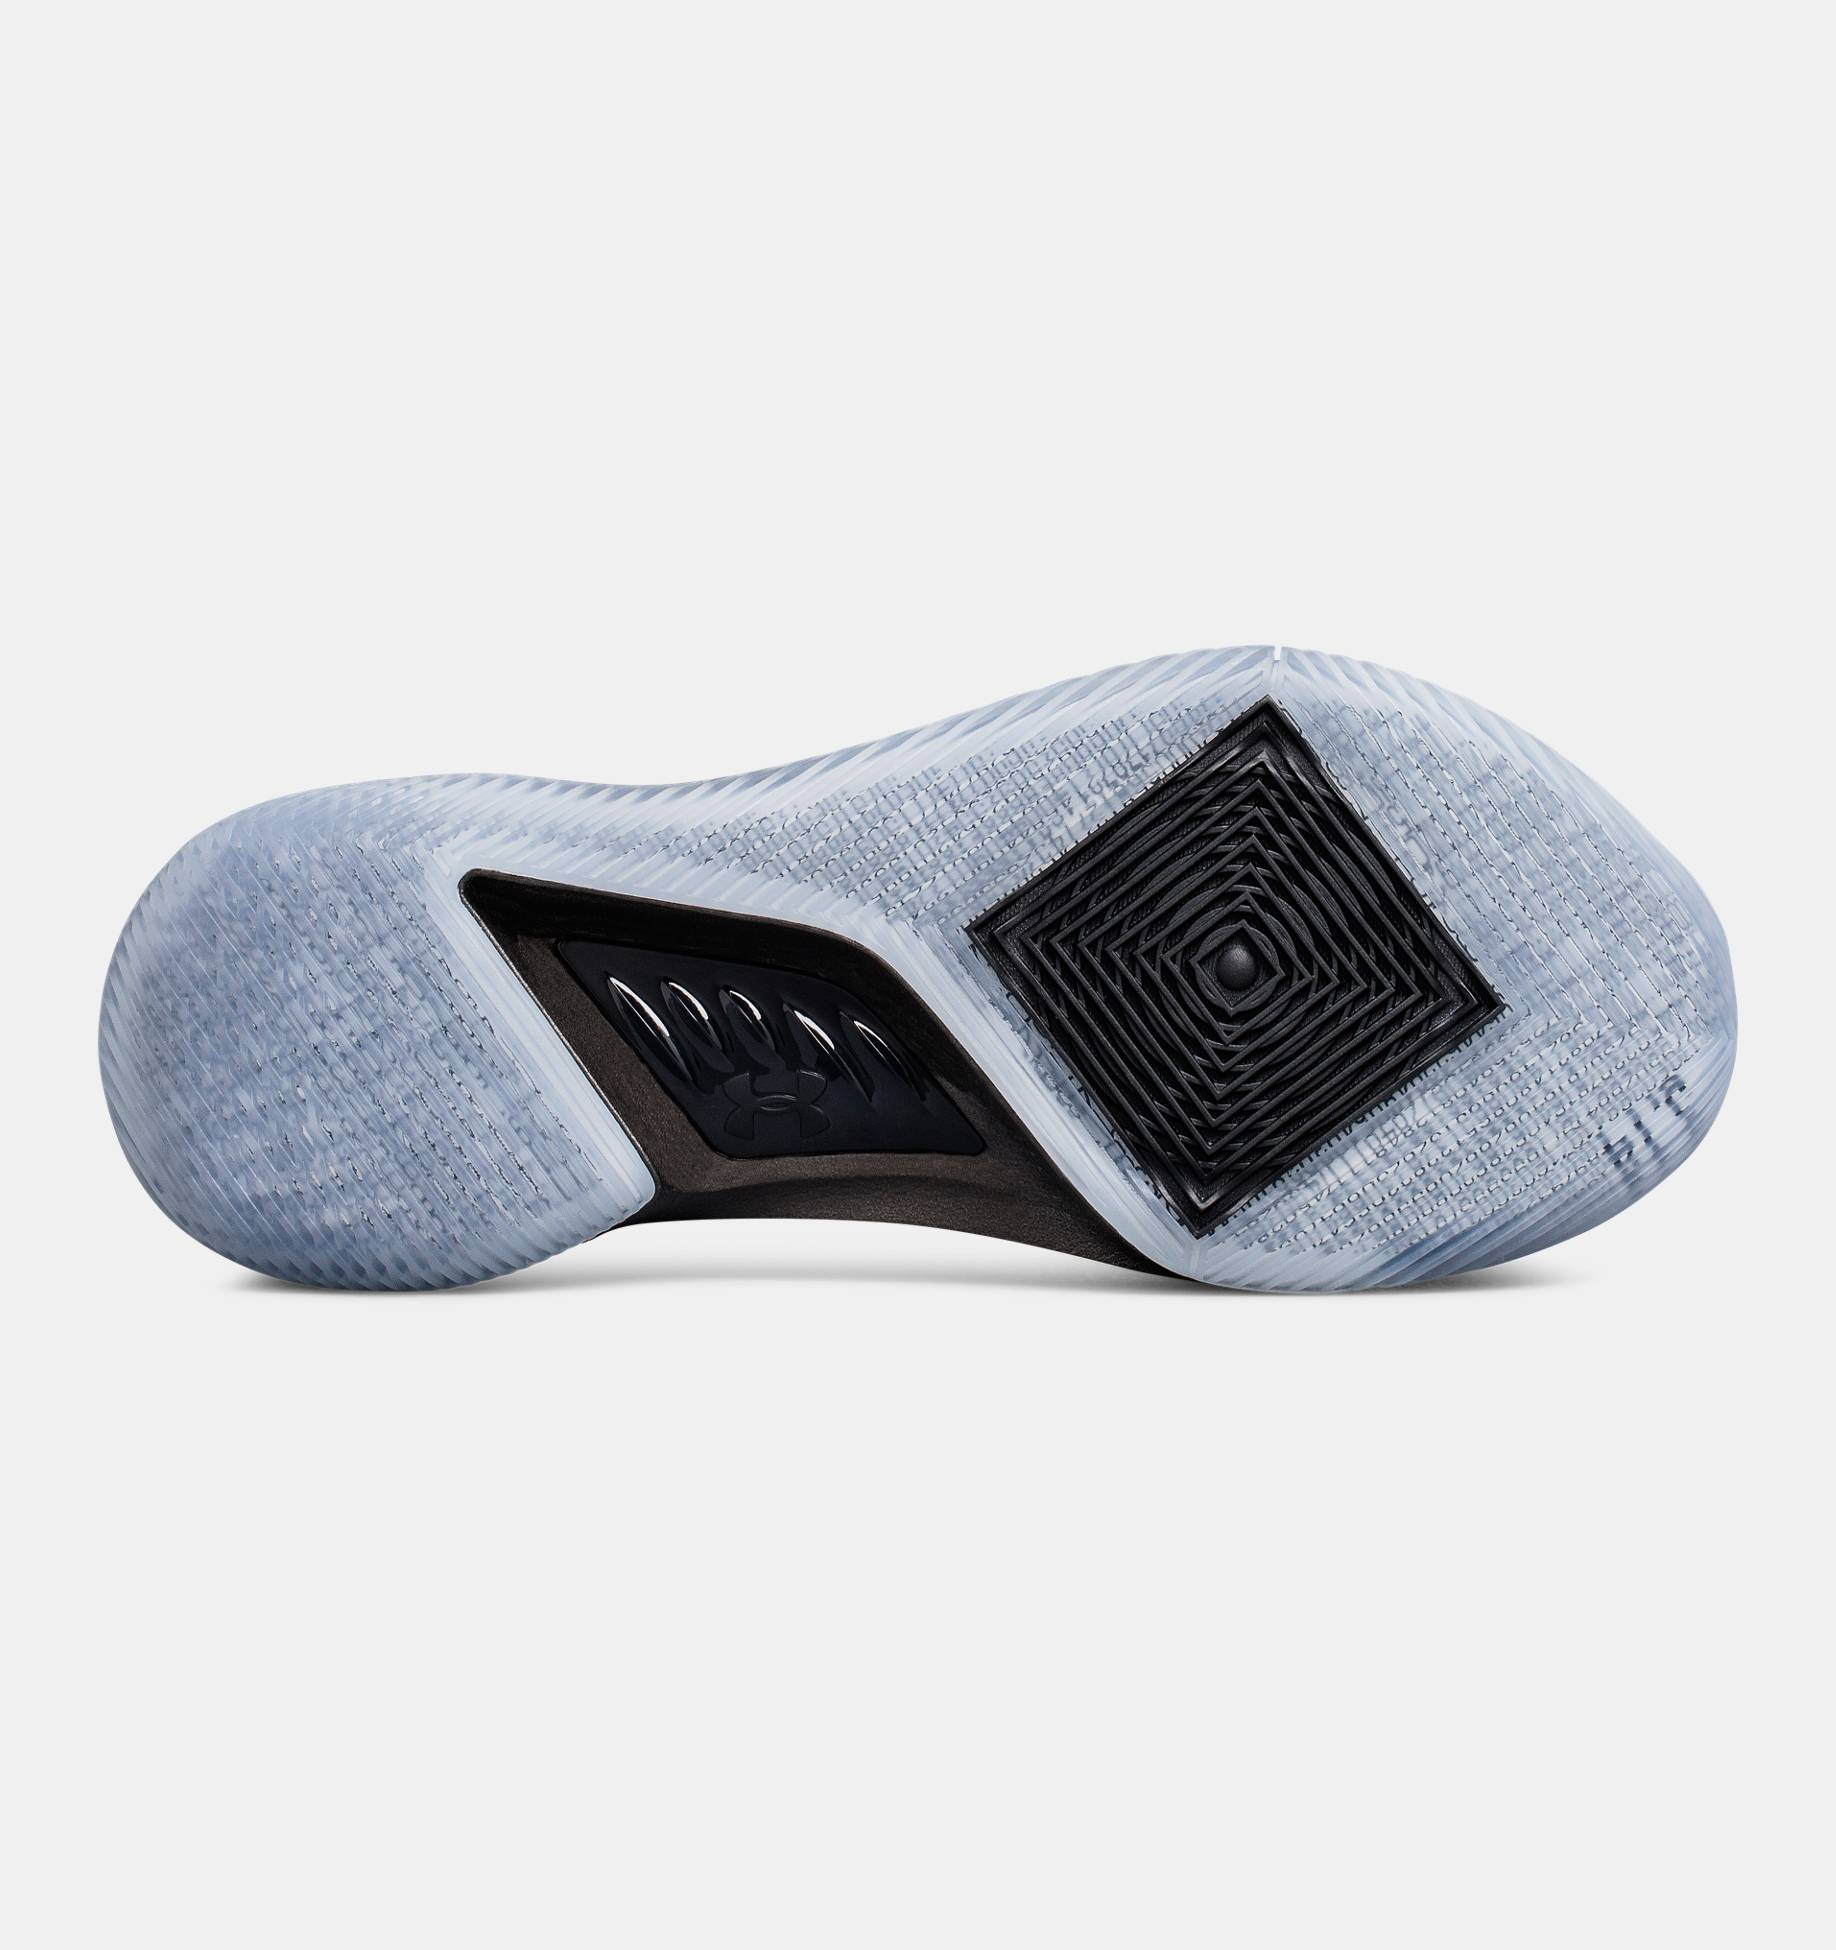 adae32cd187 under armour curry 5 pi day restock 4 - WearTesters